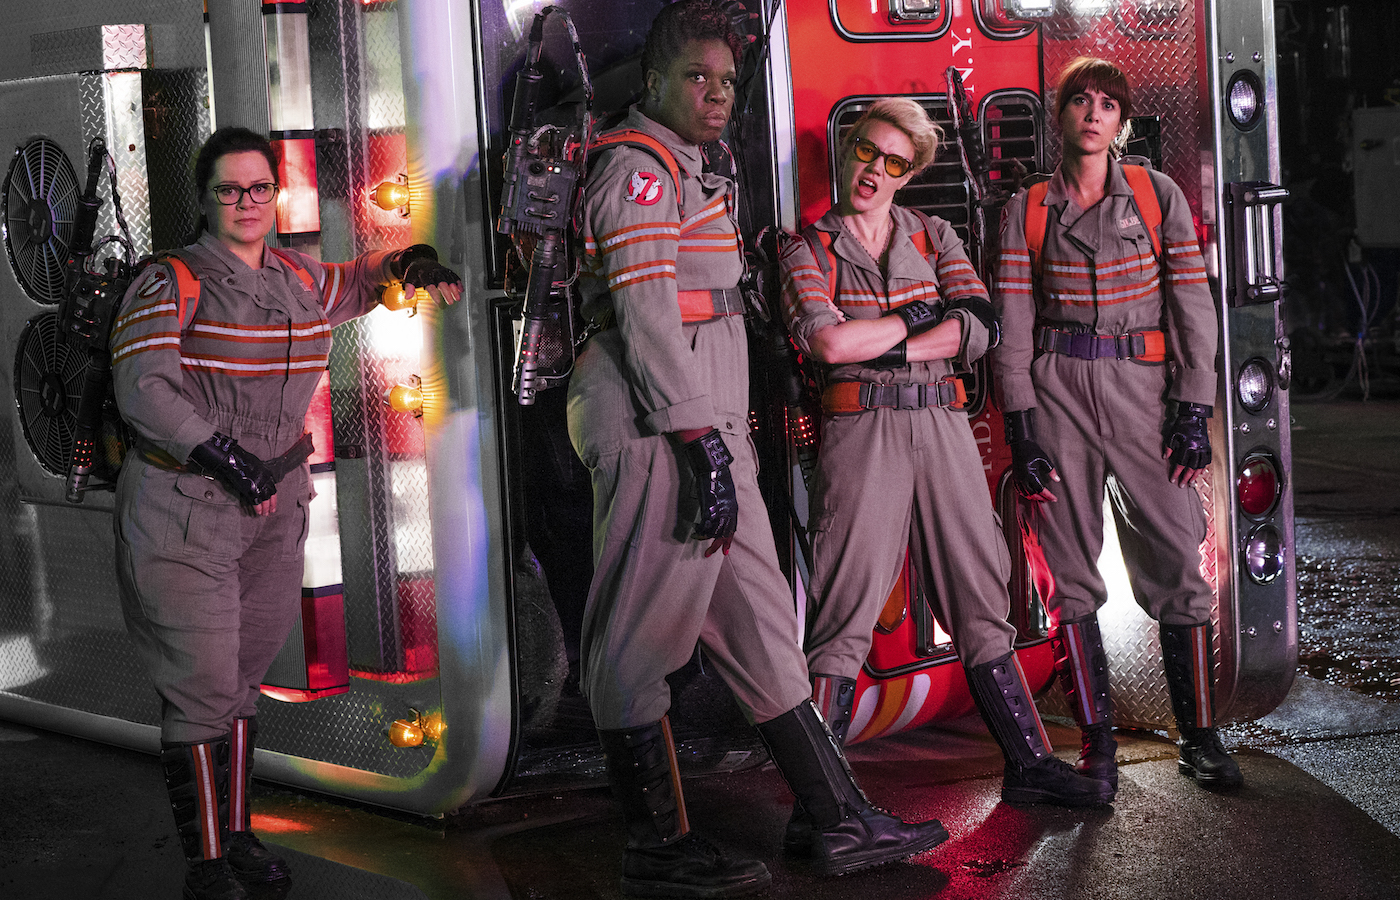 Ghostbusters cast image